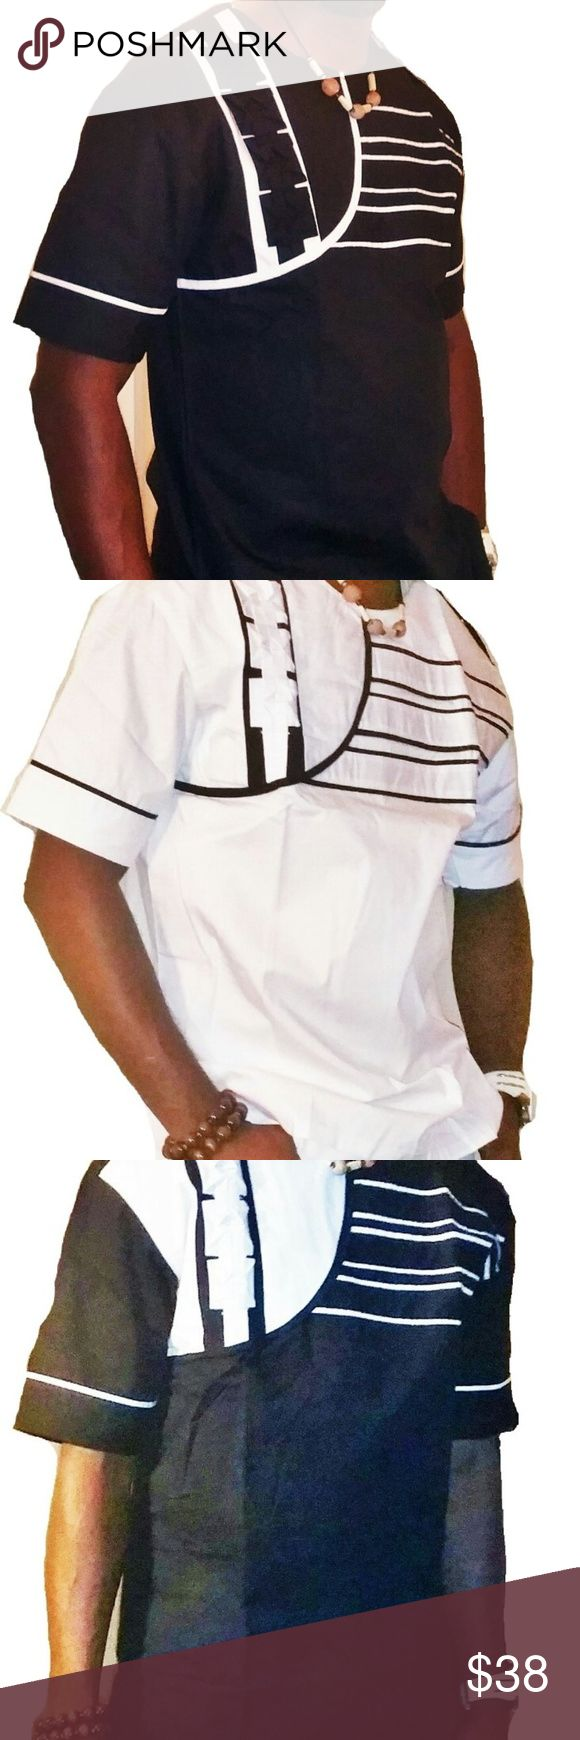 Dashiki African Mens Clothing This is a classic Men's short Sleeve African Traditional clothing finely and neatly sewn and it's made with high quality fabric. It has a perfect finish and it is ideal for any special occasion be it wedding ceremony, church service, party, outdooring etc.This costume can also be a perfect gift option to a love one. African Clothing Men Shirts Casual Button Down Shirts